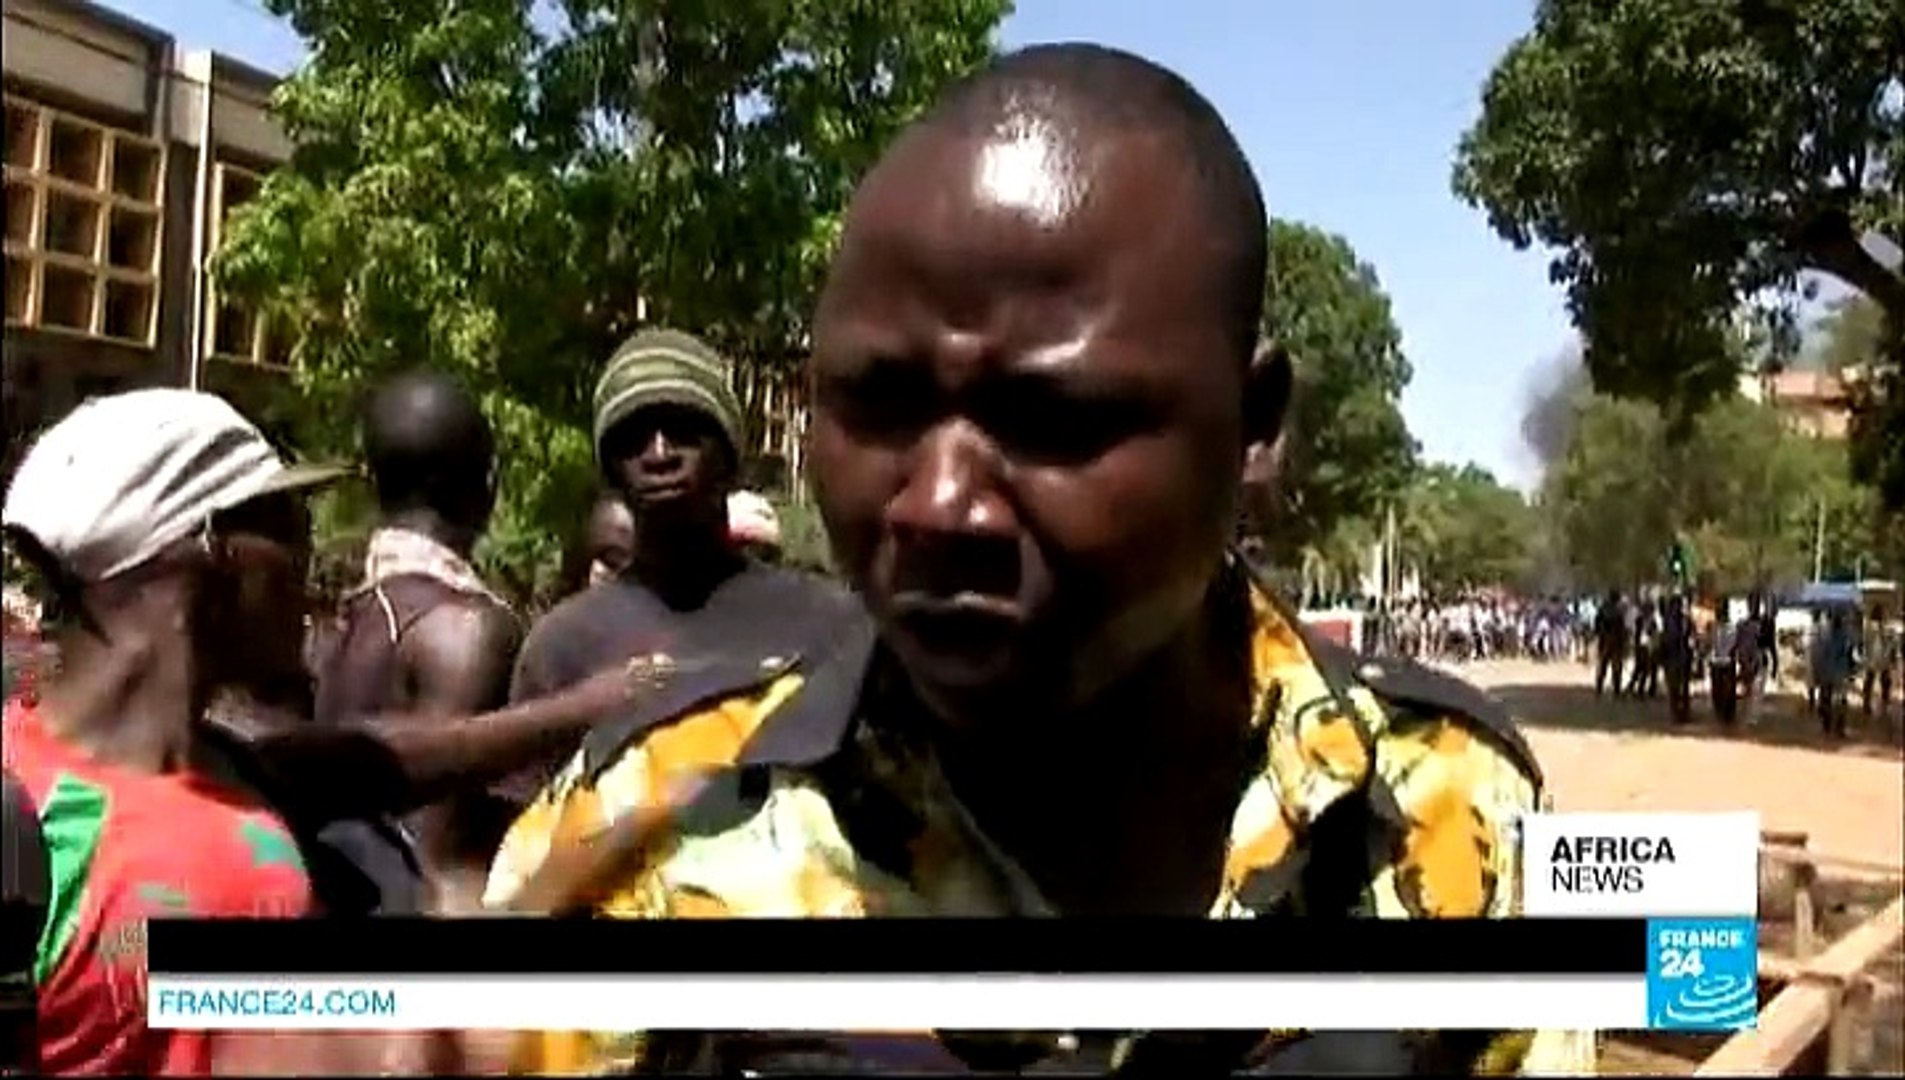 AFRICA NEWS - Burkina Faso's army announces dissolution of government and parliament